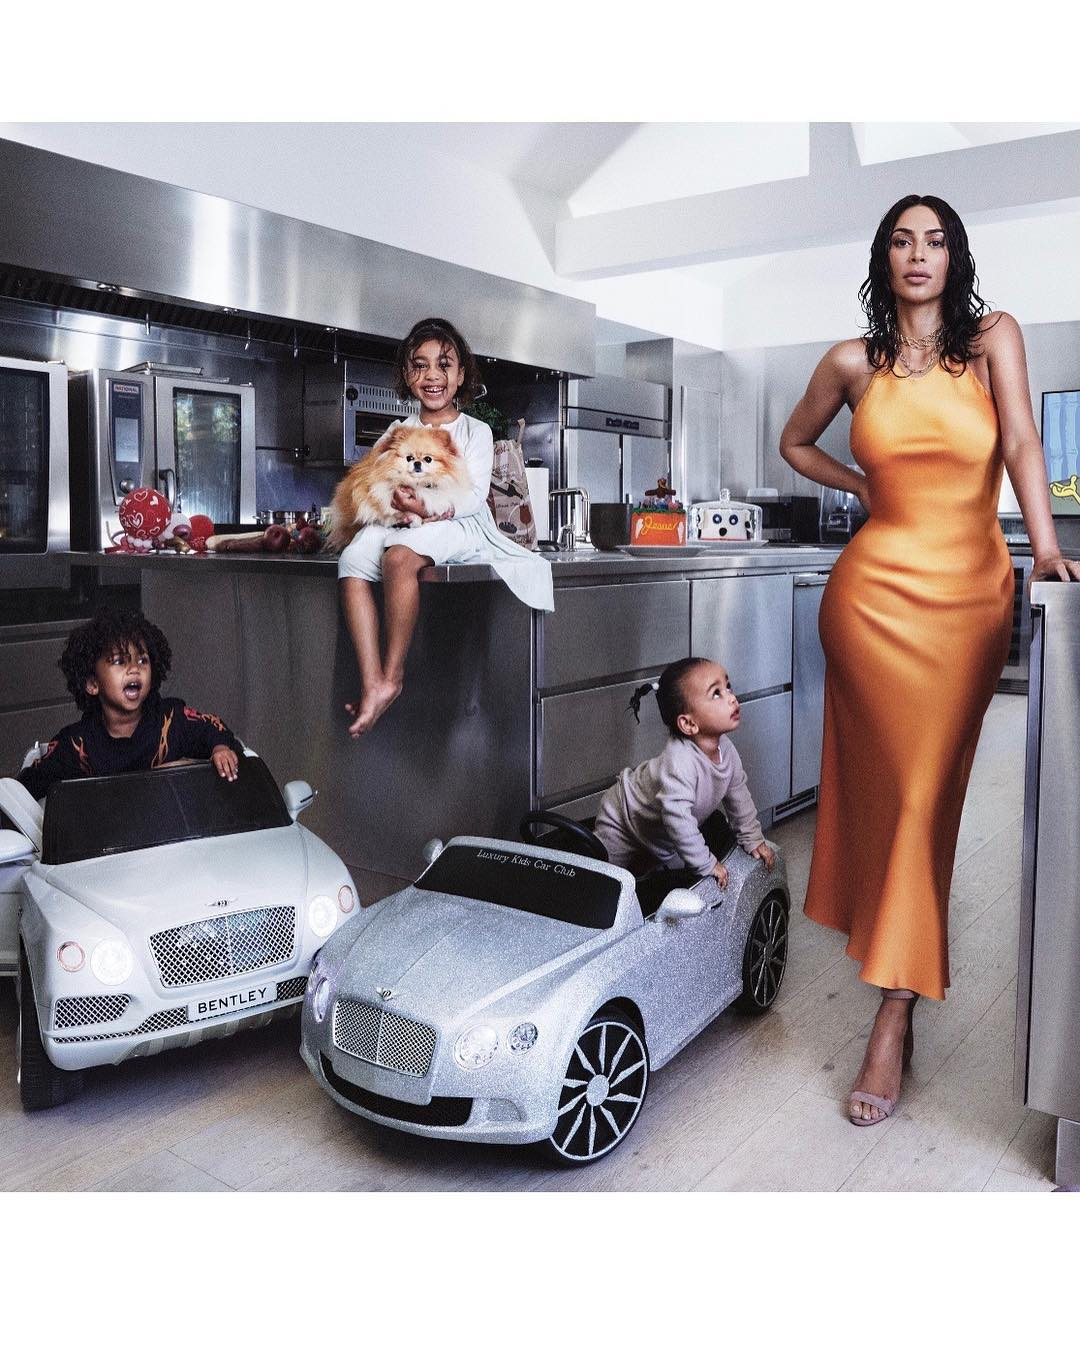 Kim Kardashian looks stunning as she models for Vogue with her kids. photo credit Instagram.jpg1  - Kim Kardashian looks stunning as she models for Vogue with her kids